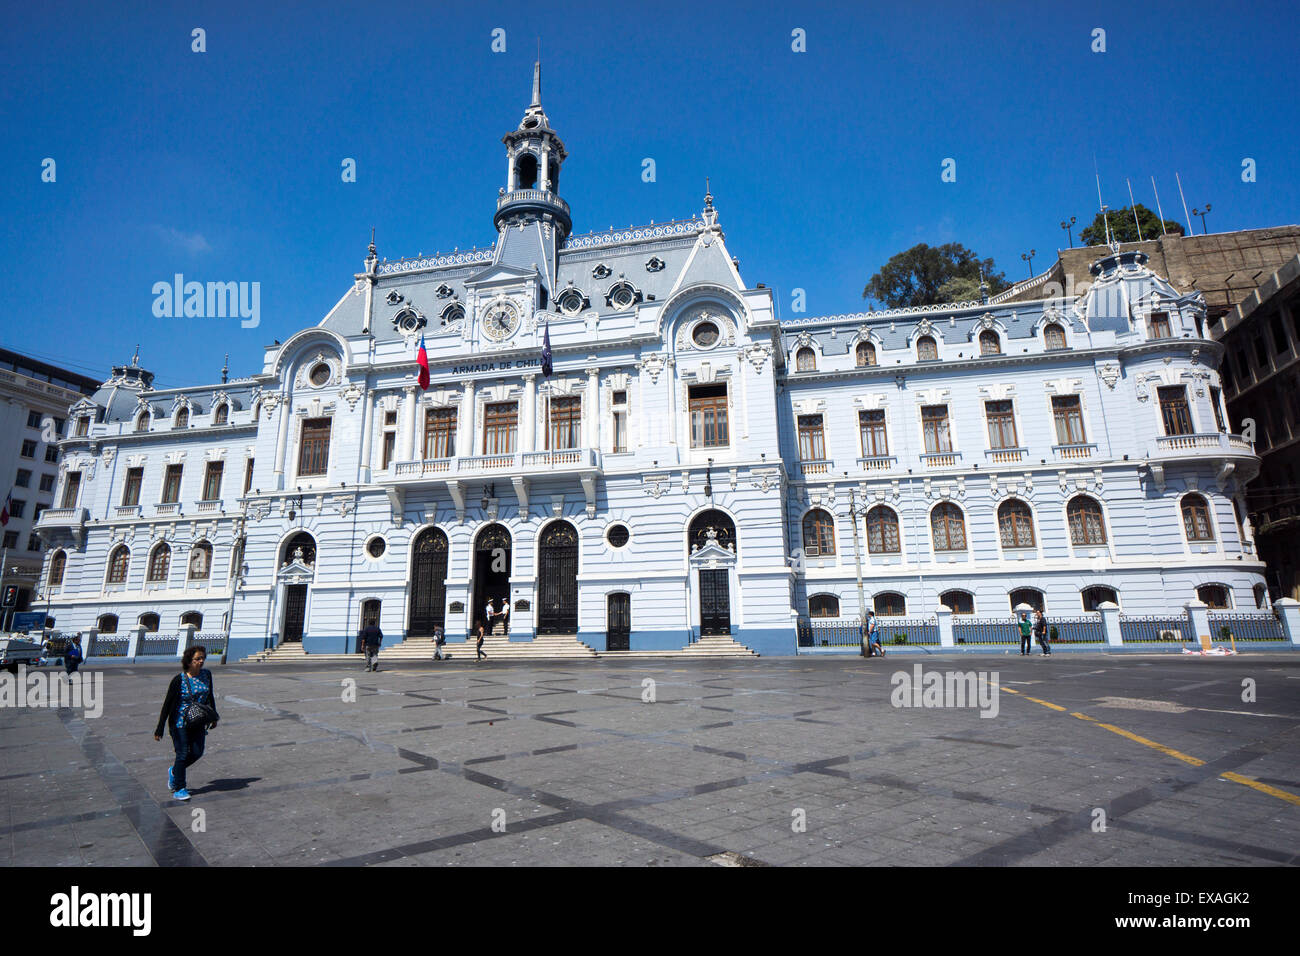 The Admiralty Building, Valparaiso, Chile, South America - Stock Image